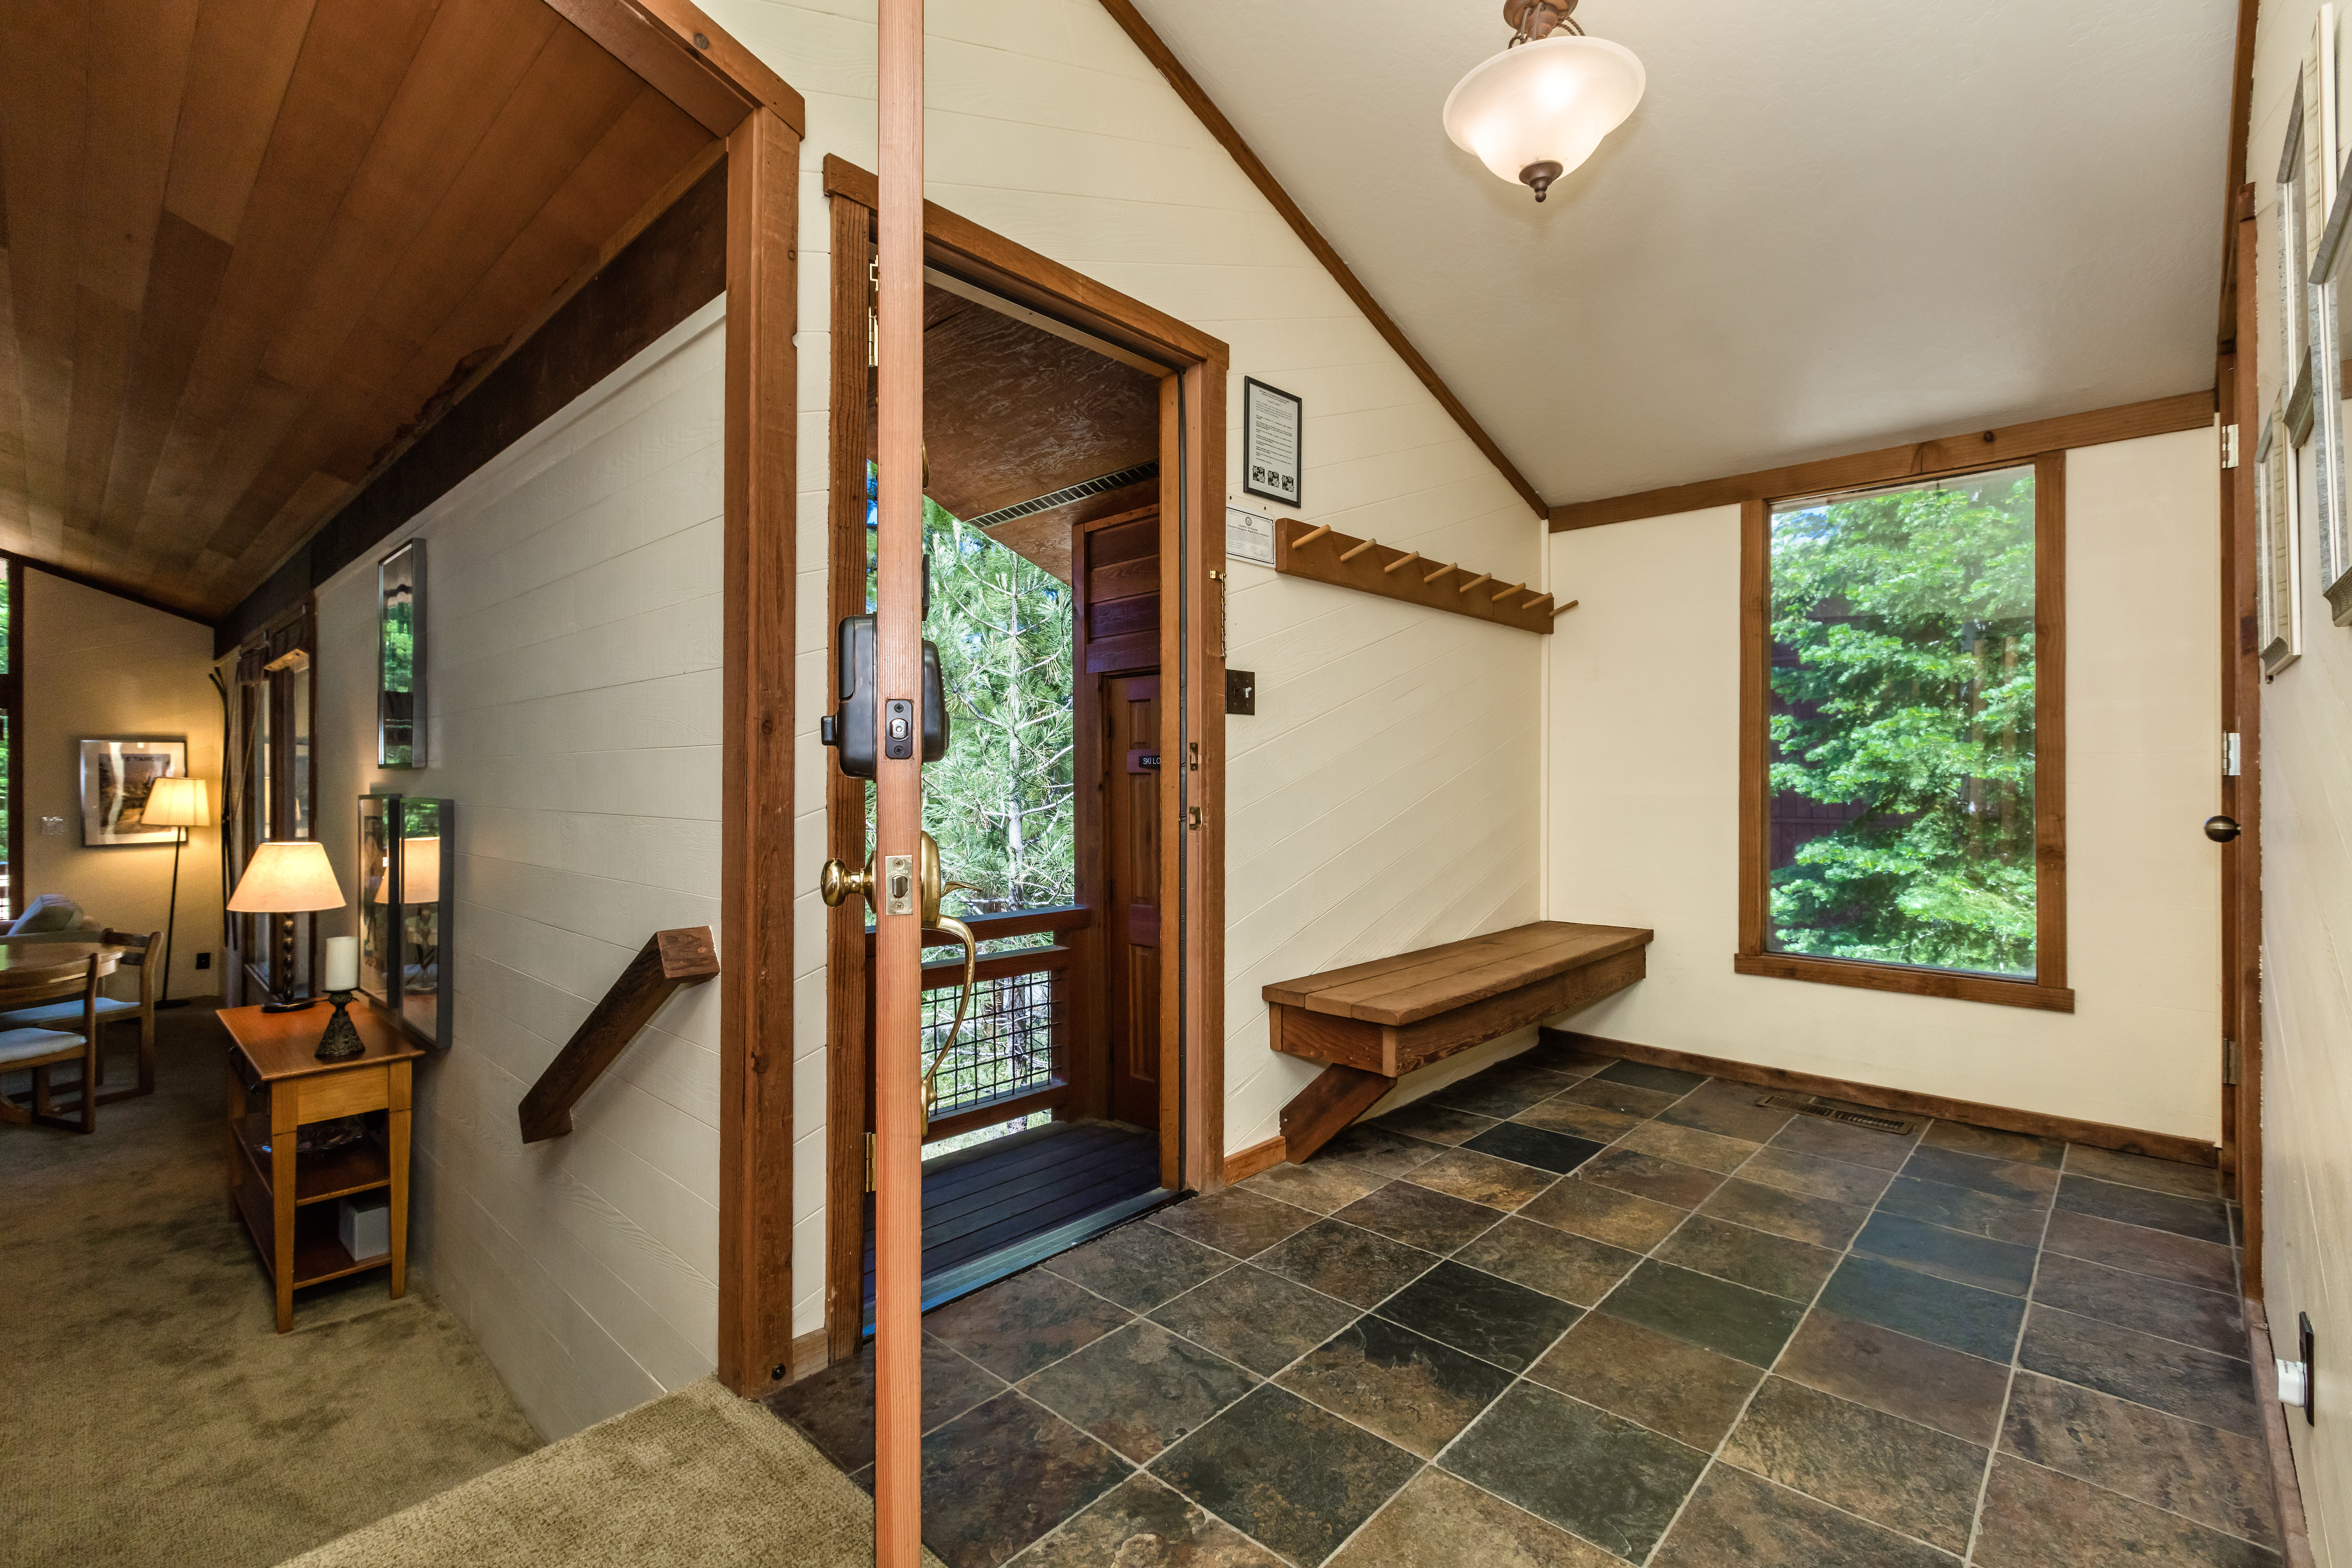 Enter up the stairs through the stone foyer-equipped w/bench and coat racks